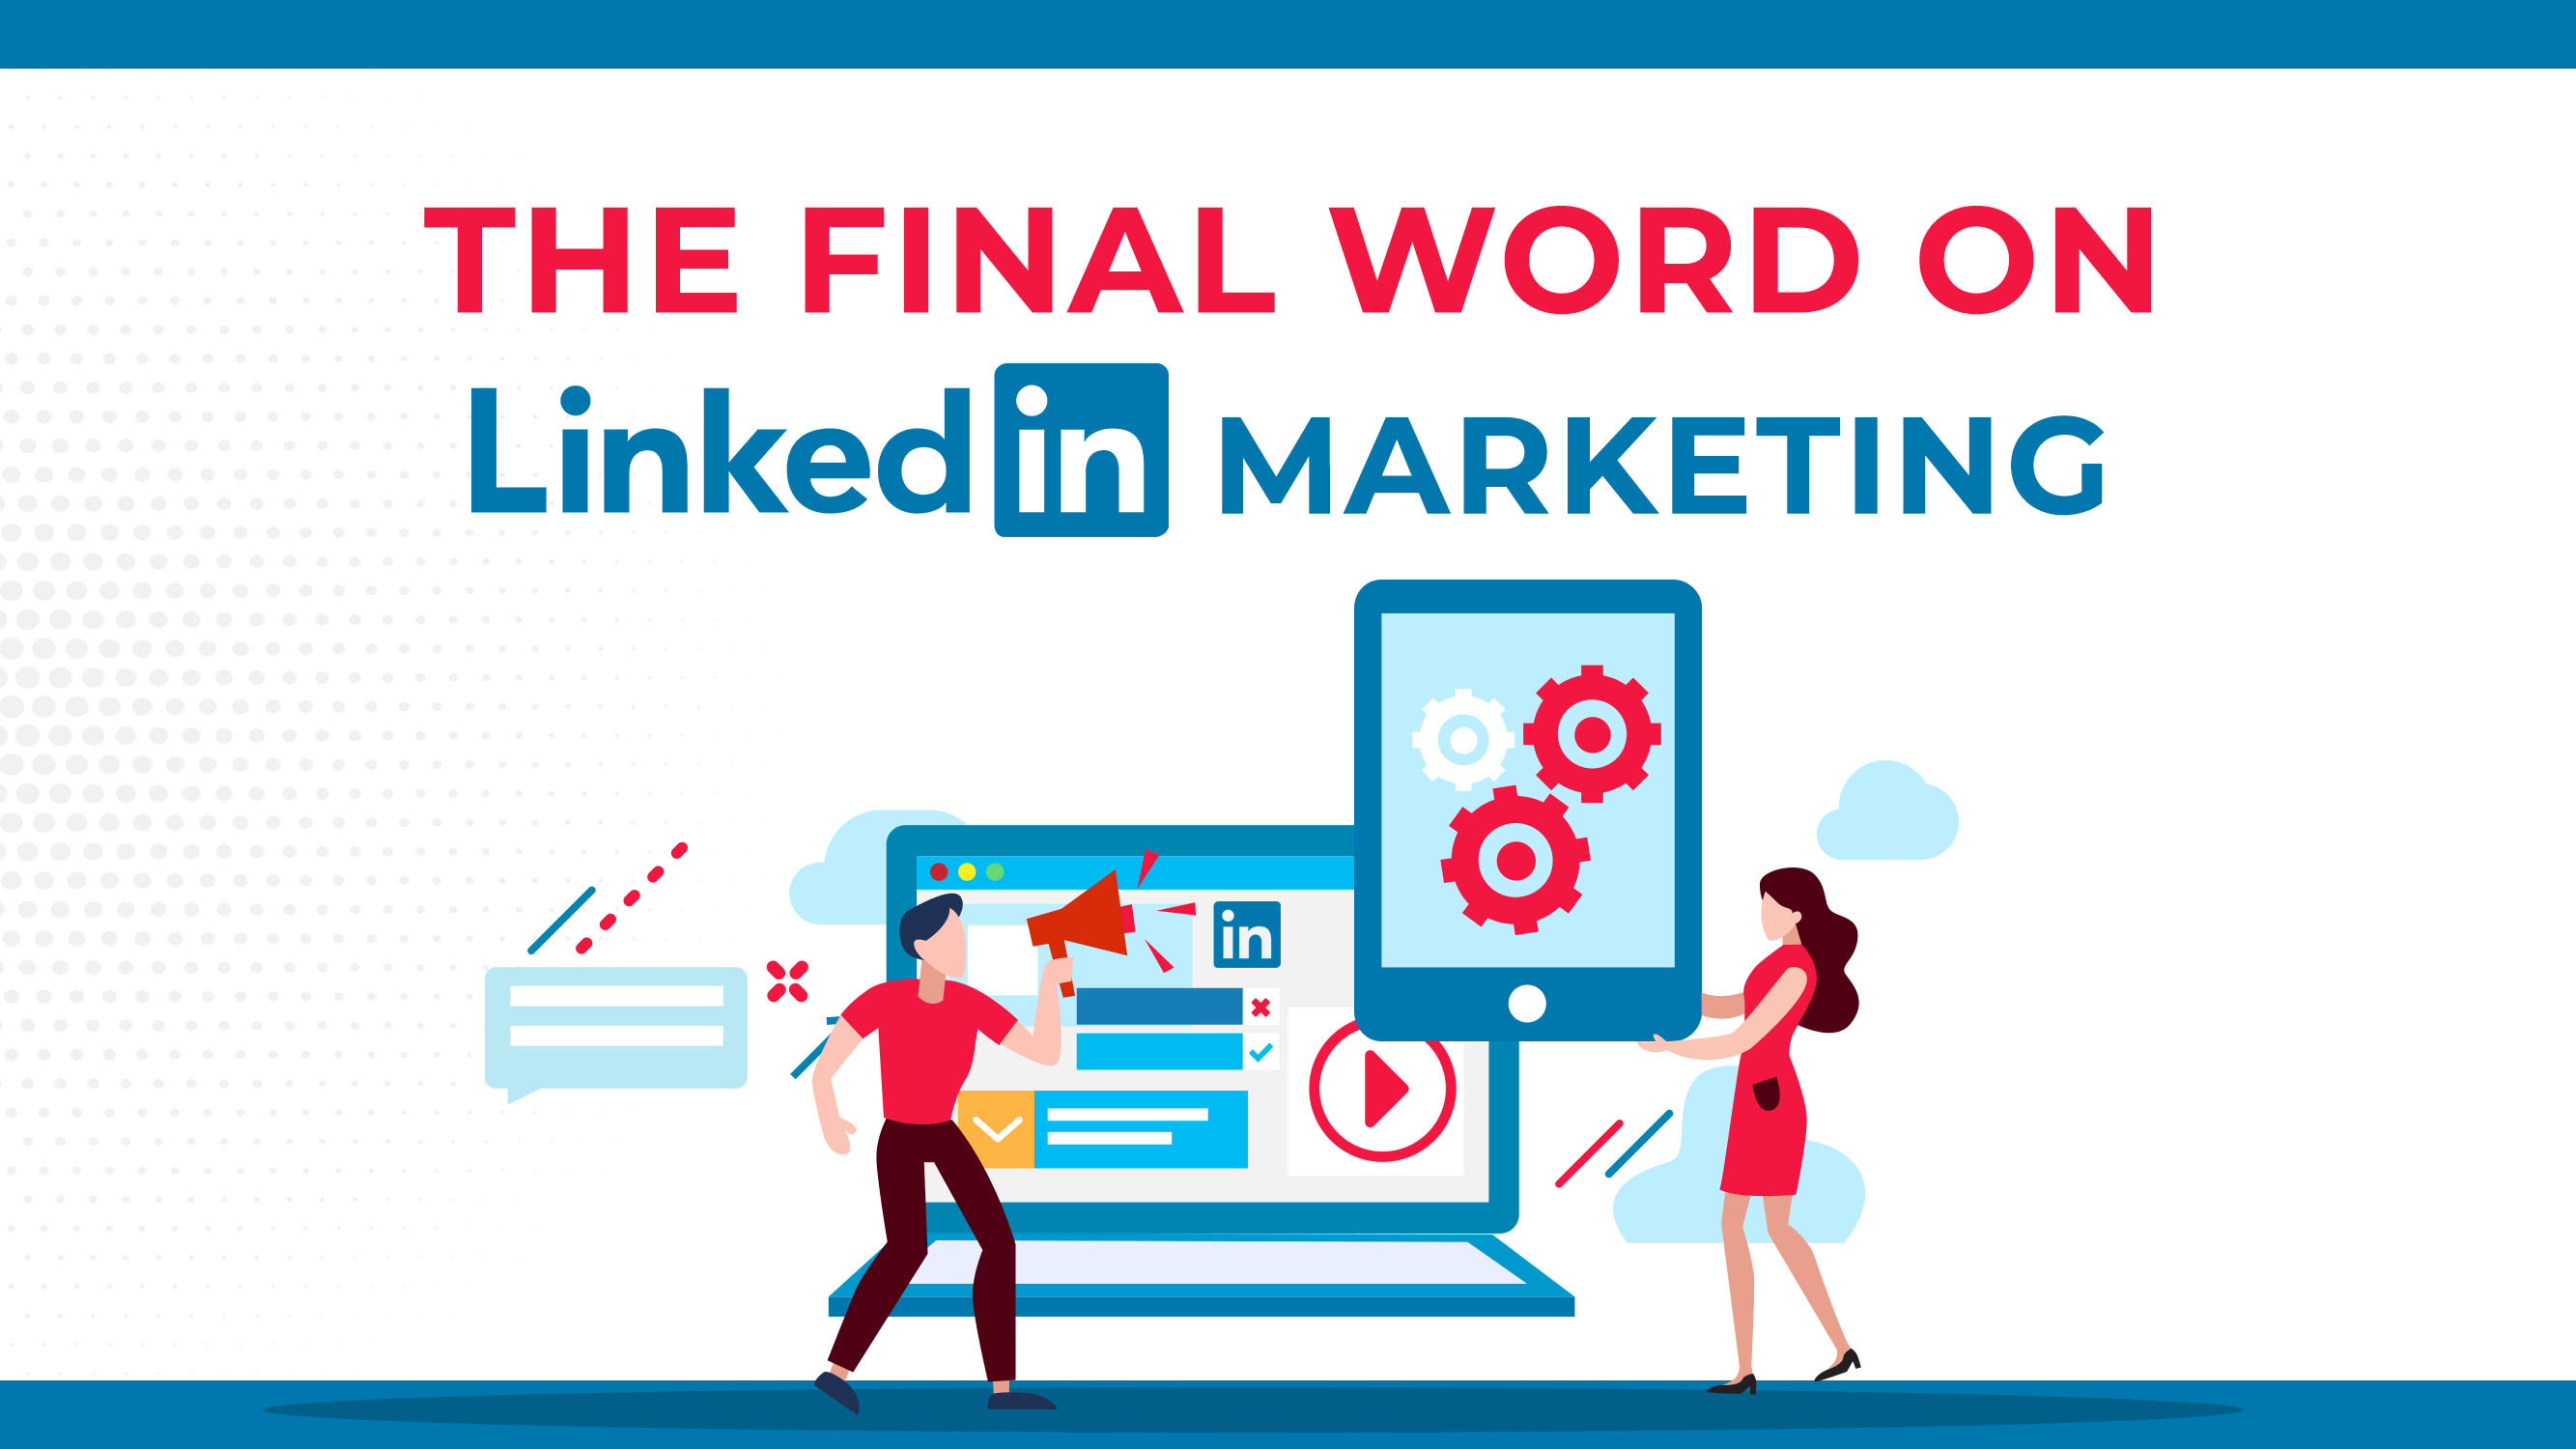 The Final Word On LinkedIn Marketing